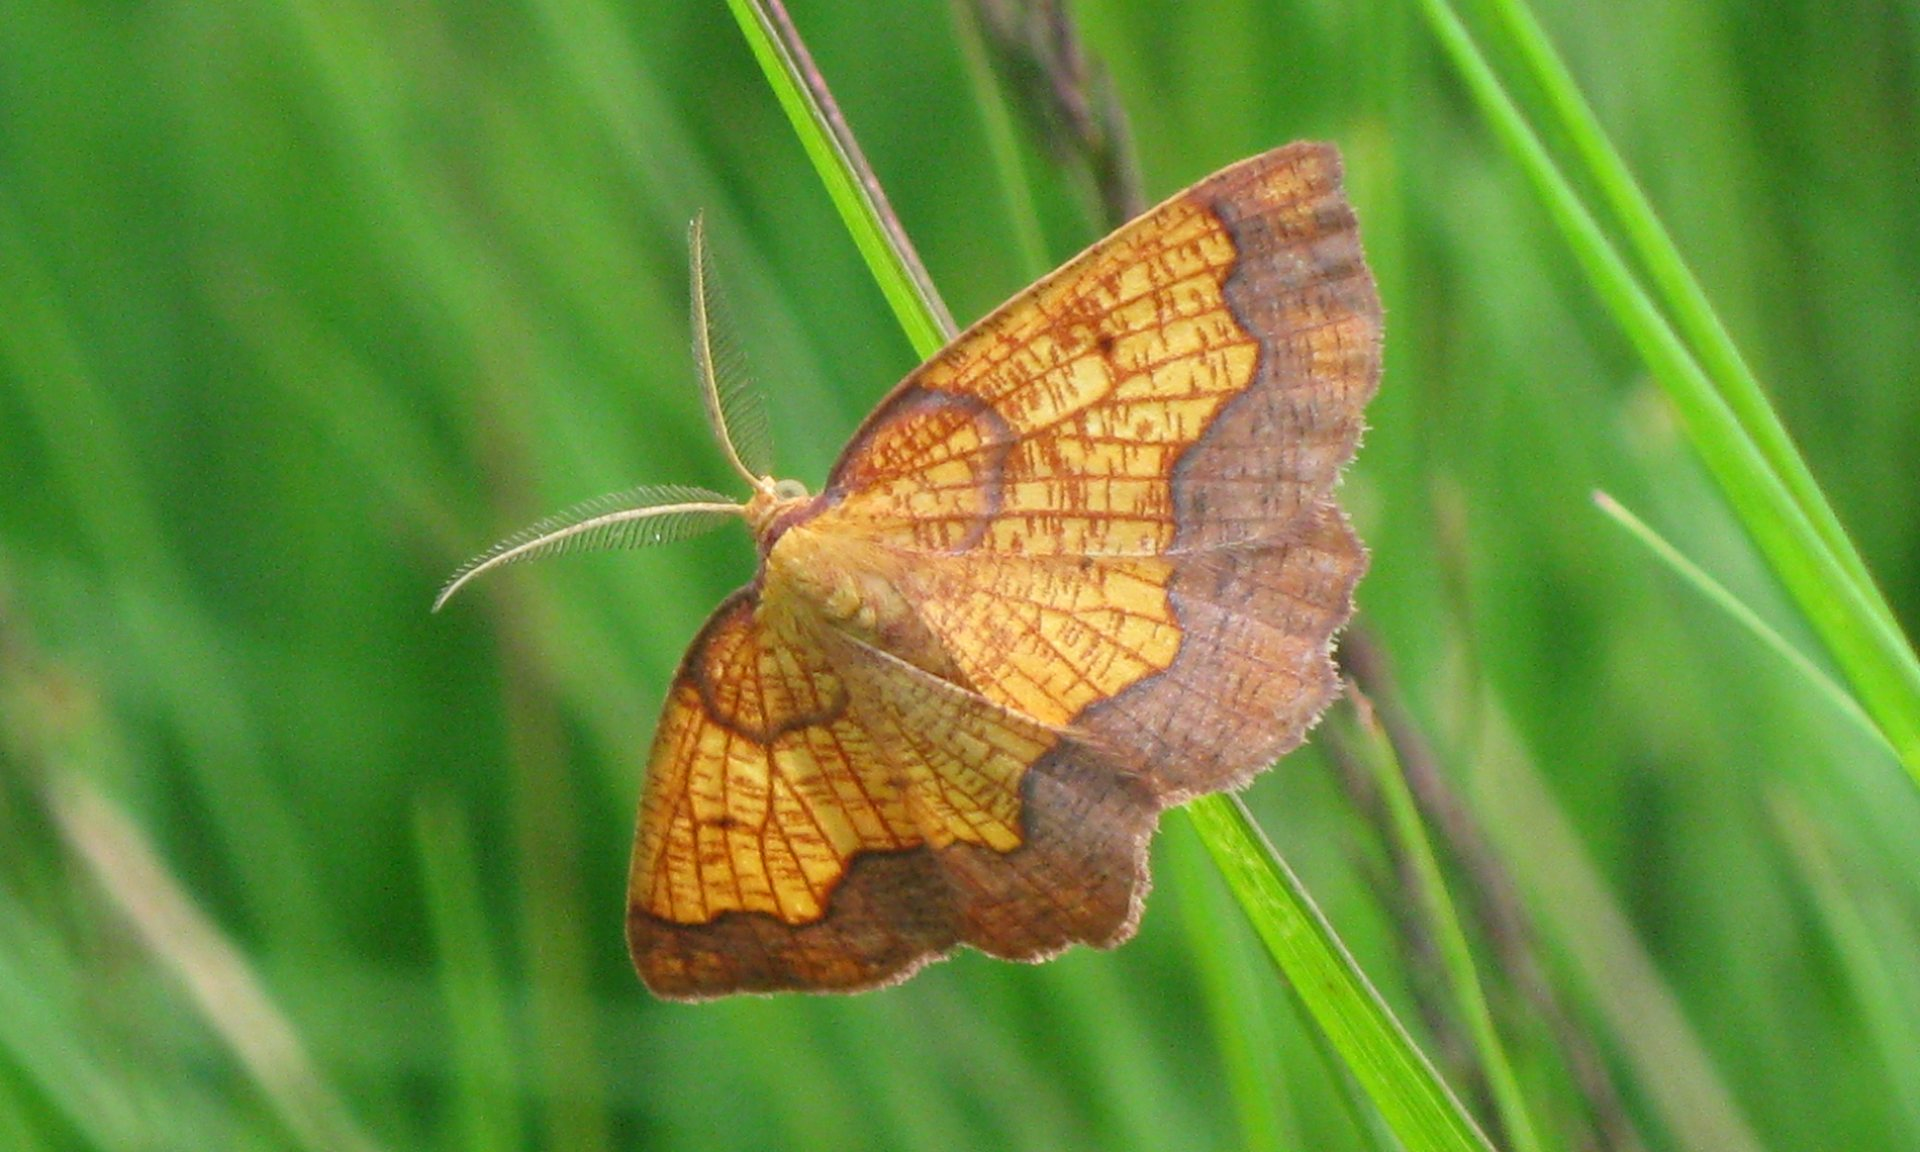 Fewer than 100 dark bordered beauty moths may be left in England. Photo courtesy of University of York.